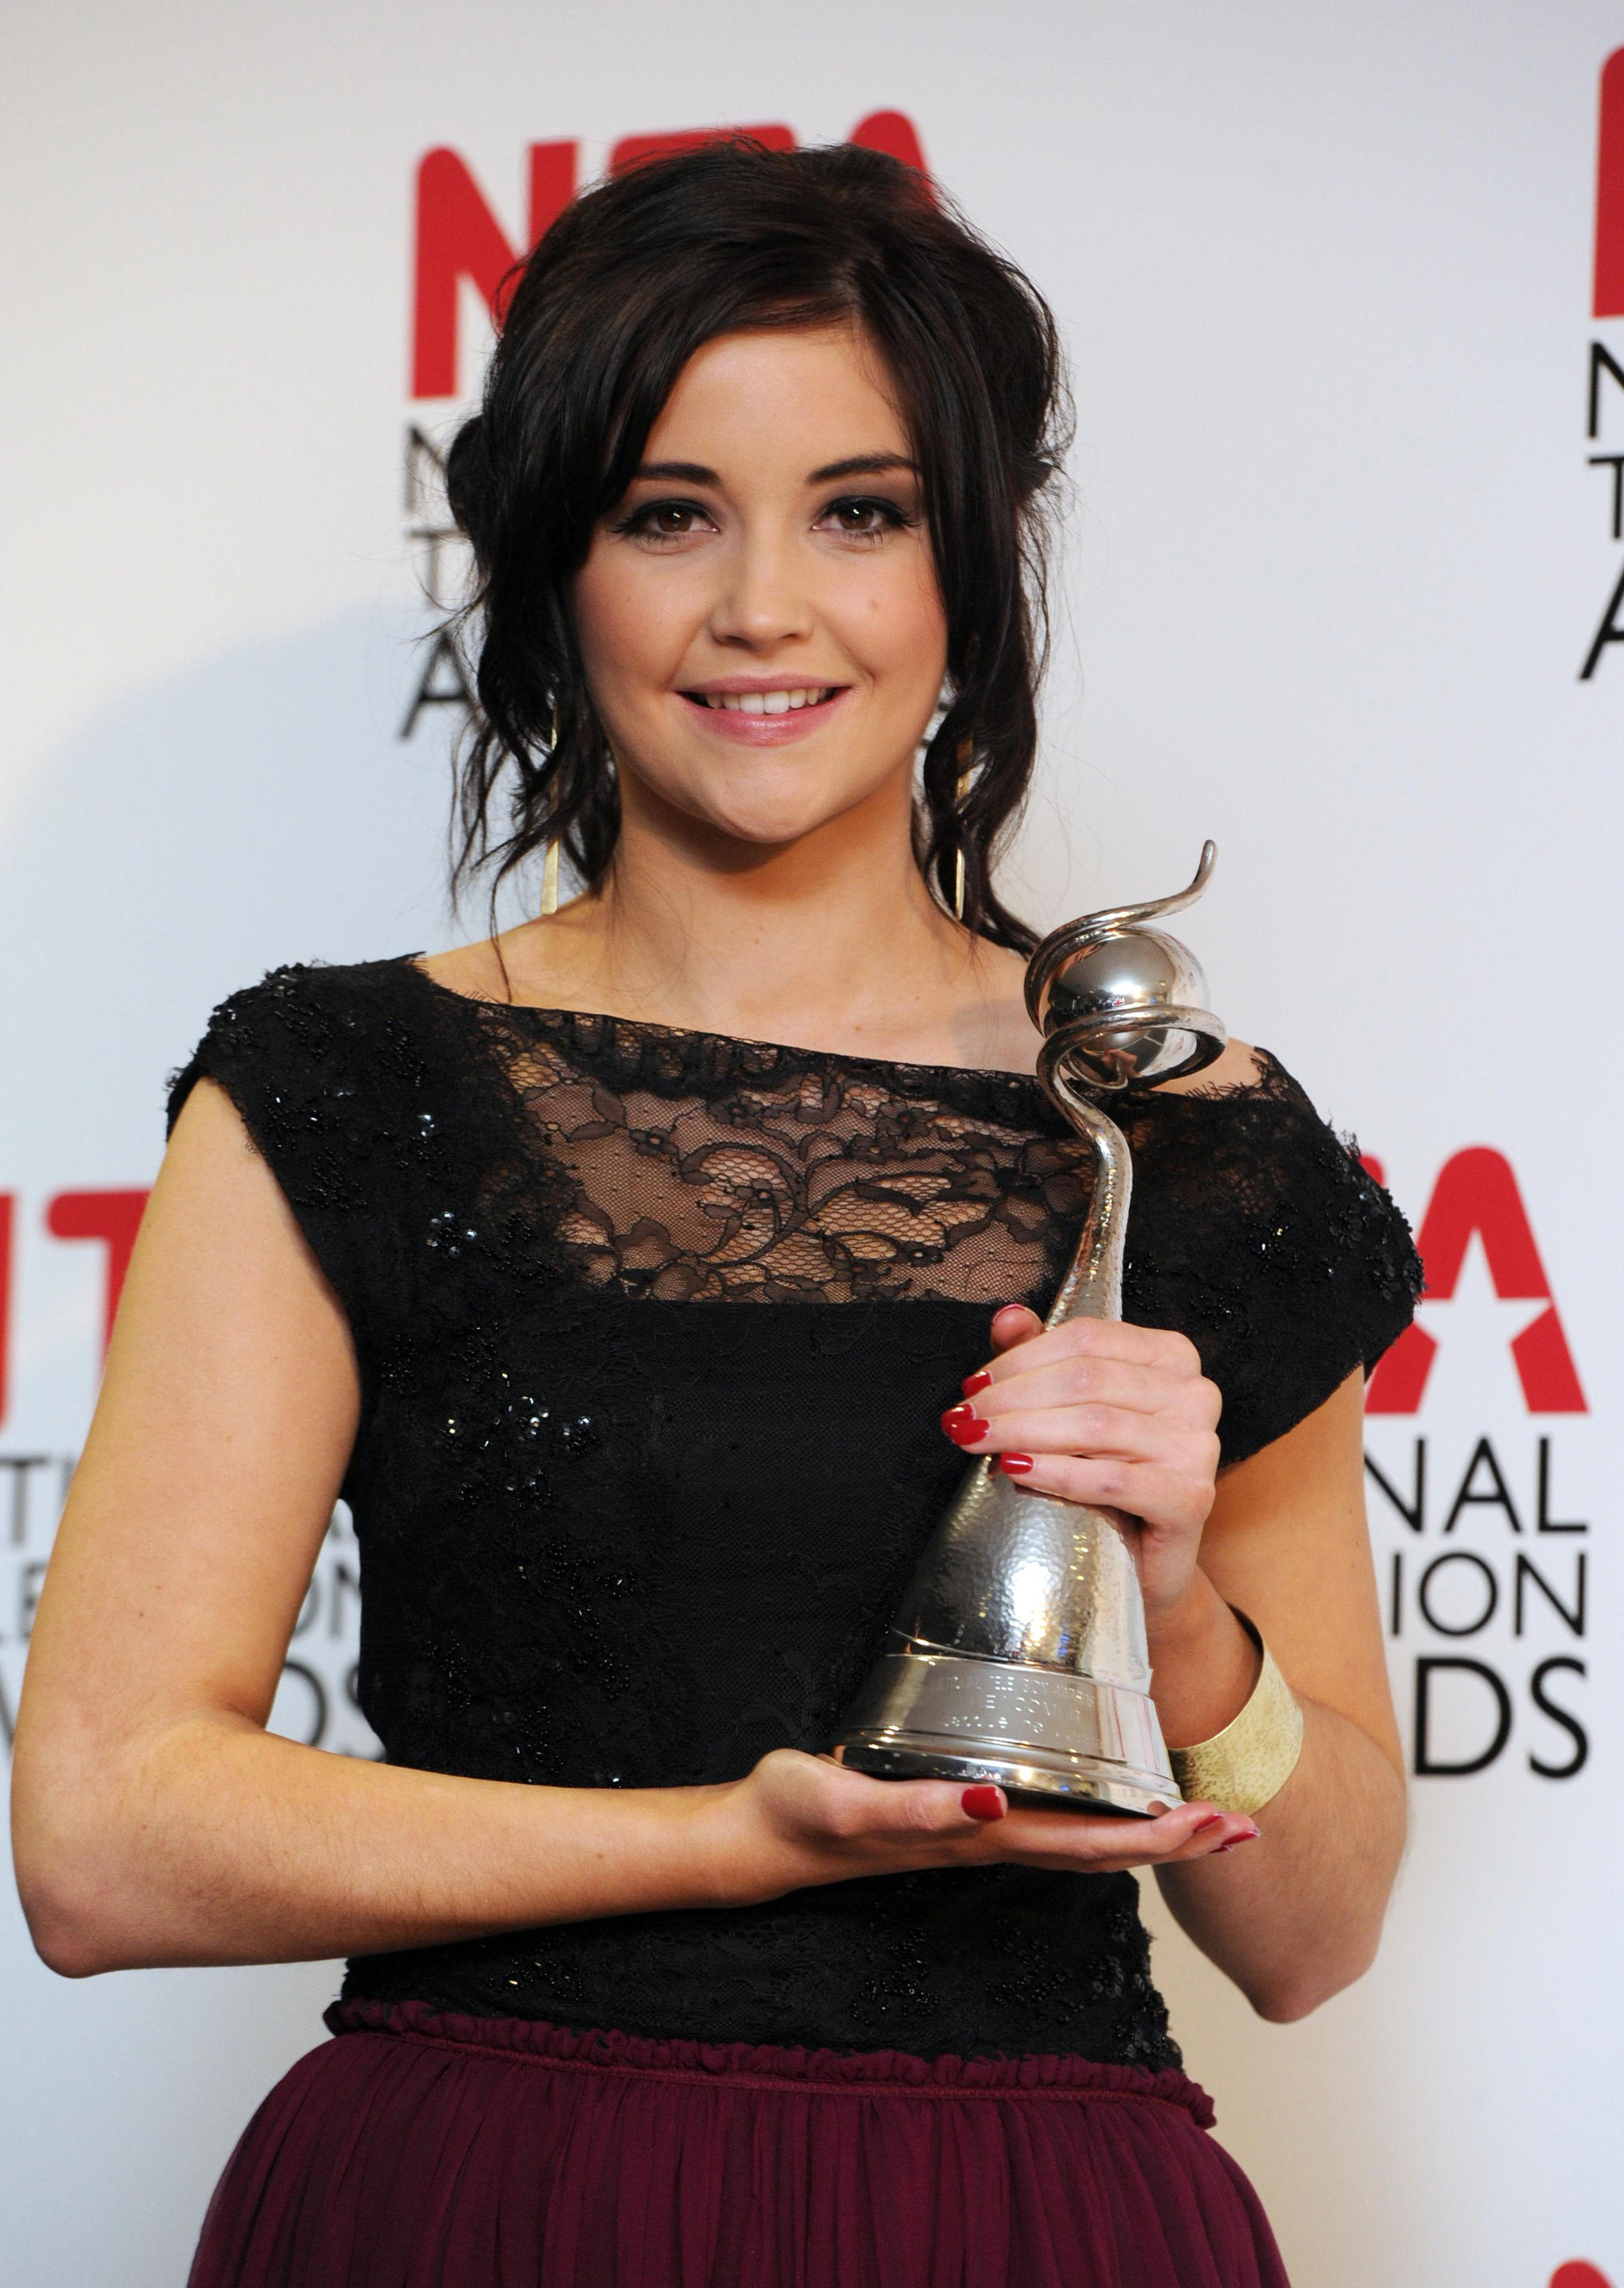 Jacqueline Jossa holds her Newcomer award received at the National Television Awards 2012. (Anthony Devlin/PA)